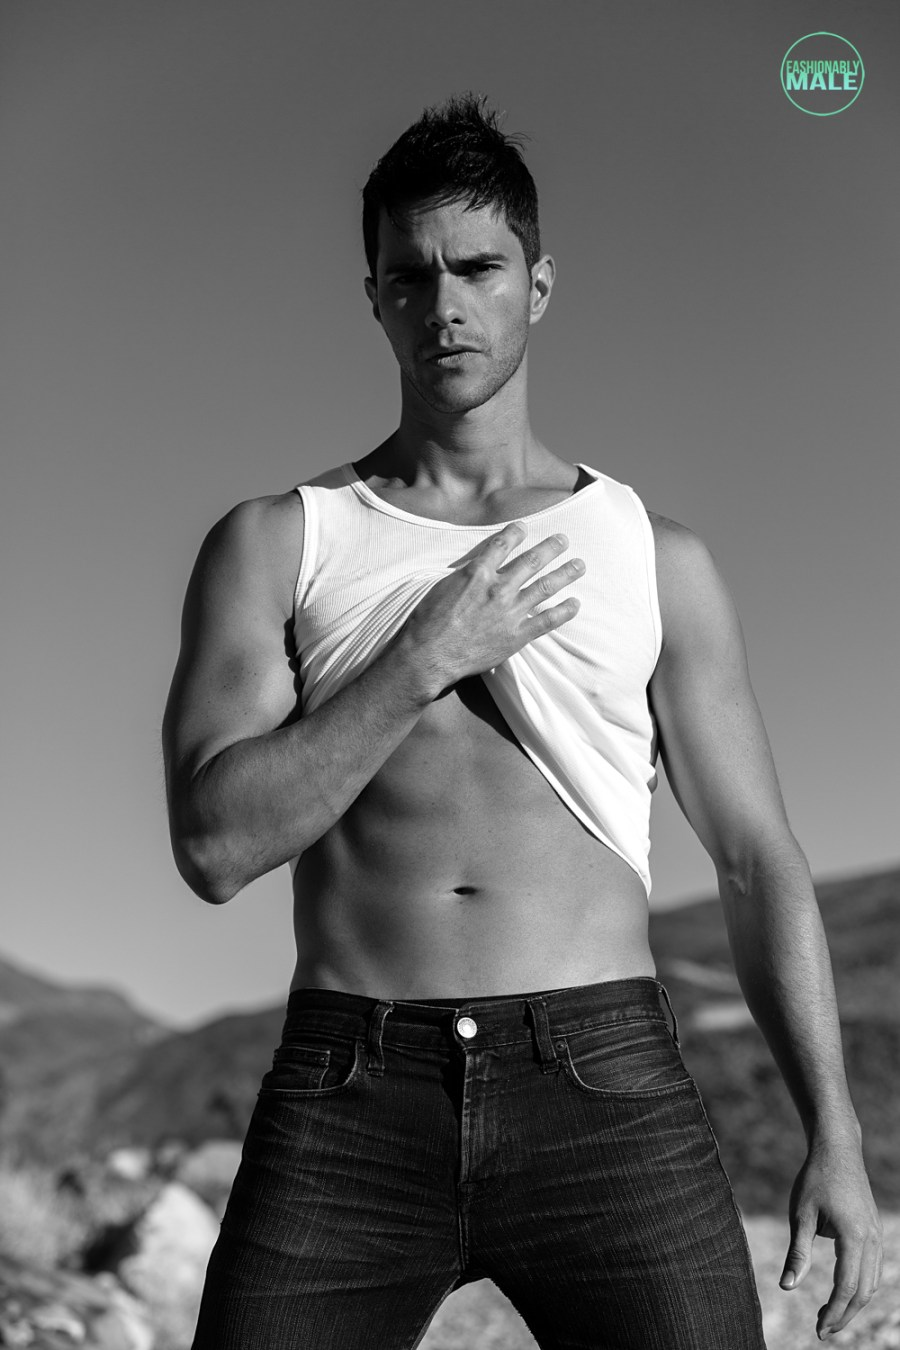 Augusto and Louis by Ivan Avila for Fashionably Male23